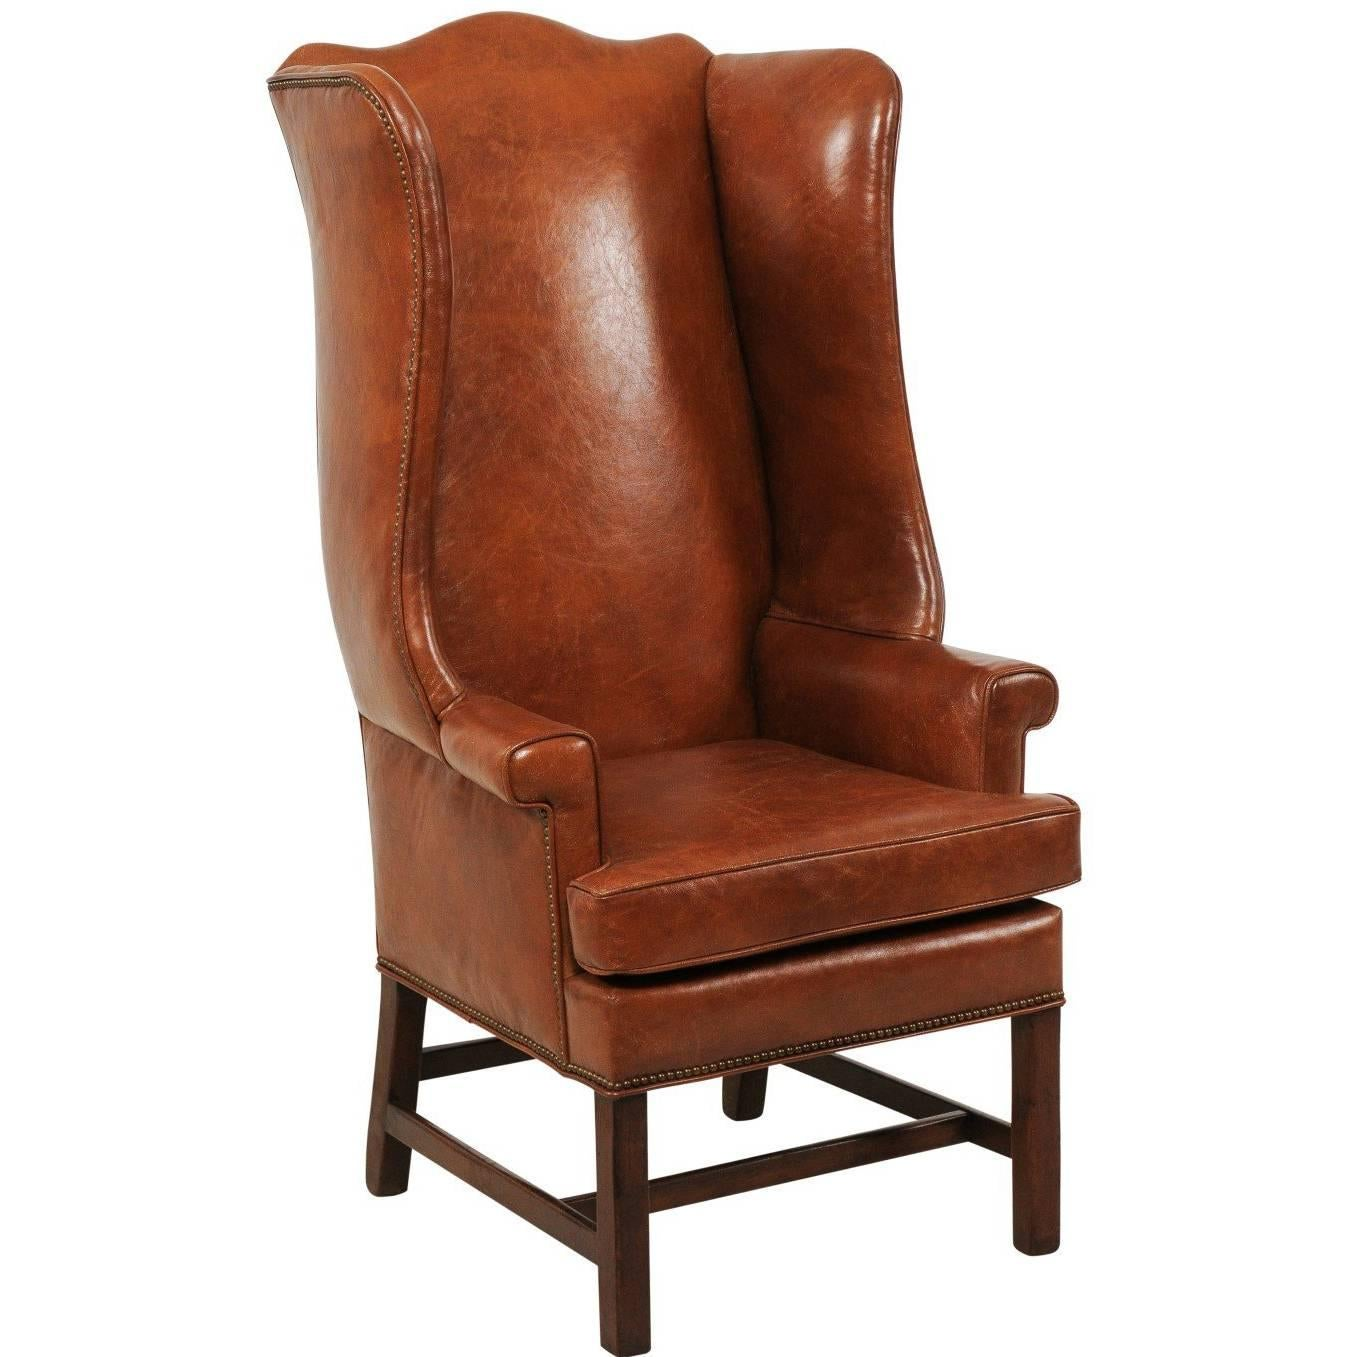 Vintage English Midcentury Brown Leather Wingback Chair With Brass Nailhead  Trim For Sale